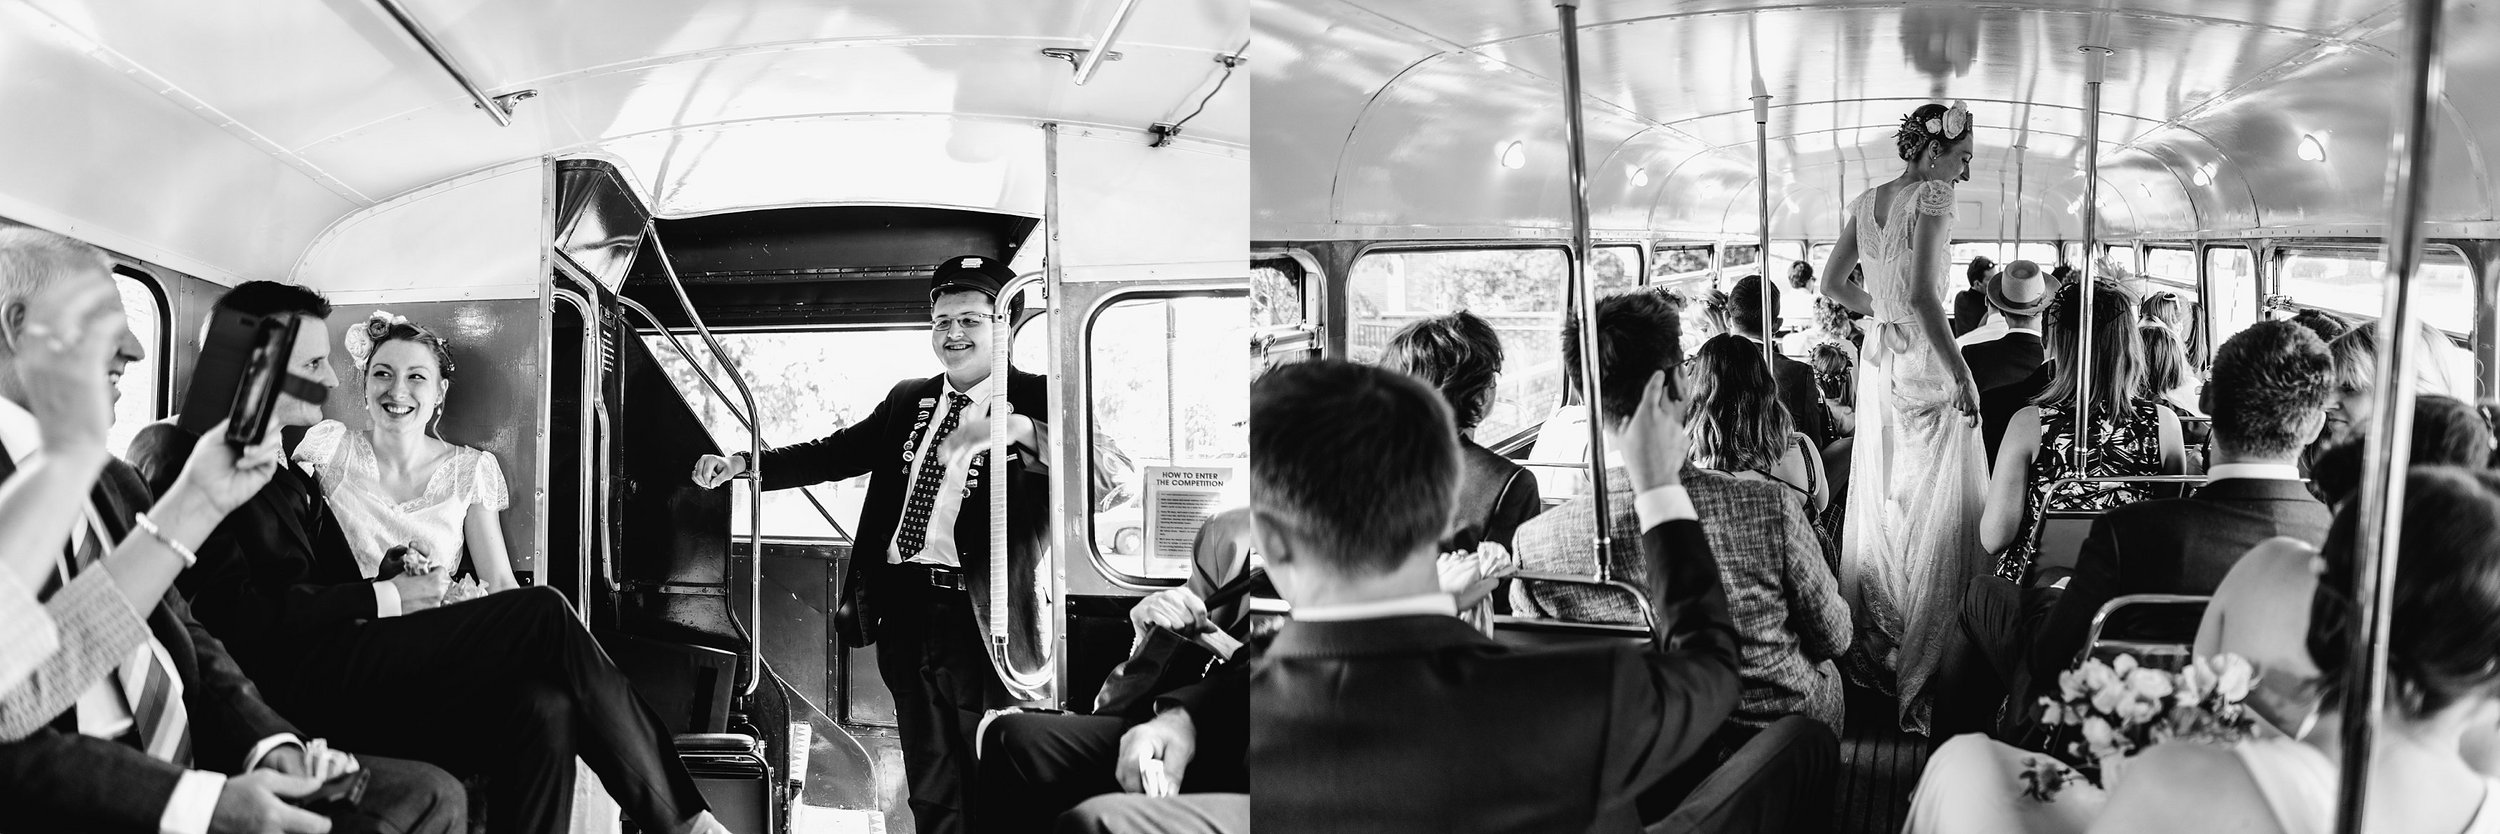 ALTERNATIVE KEW GARDEN AND BIG RED BUS LONDON WEDDING_0021.jpg